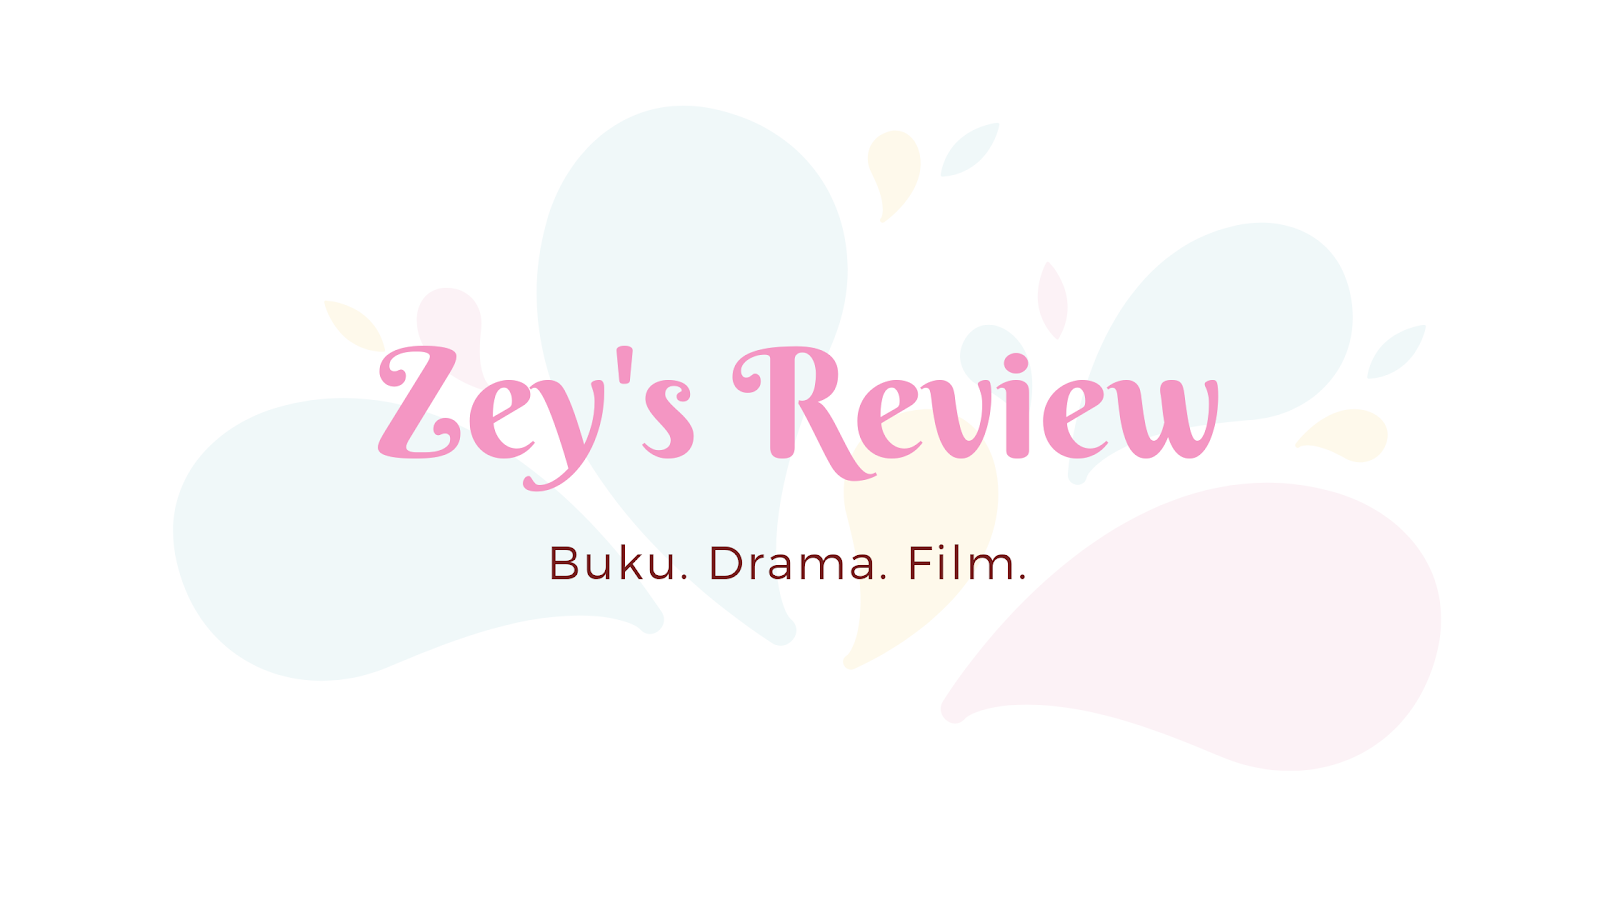 Zey's Review